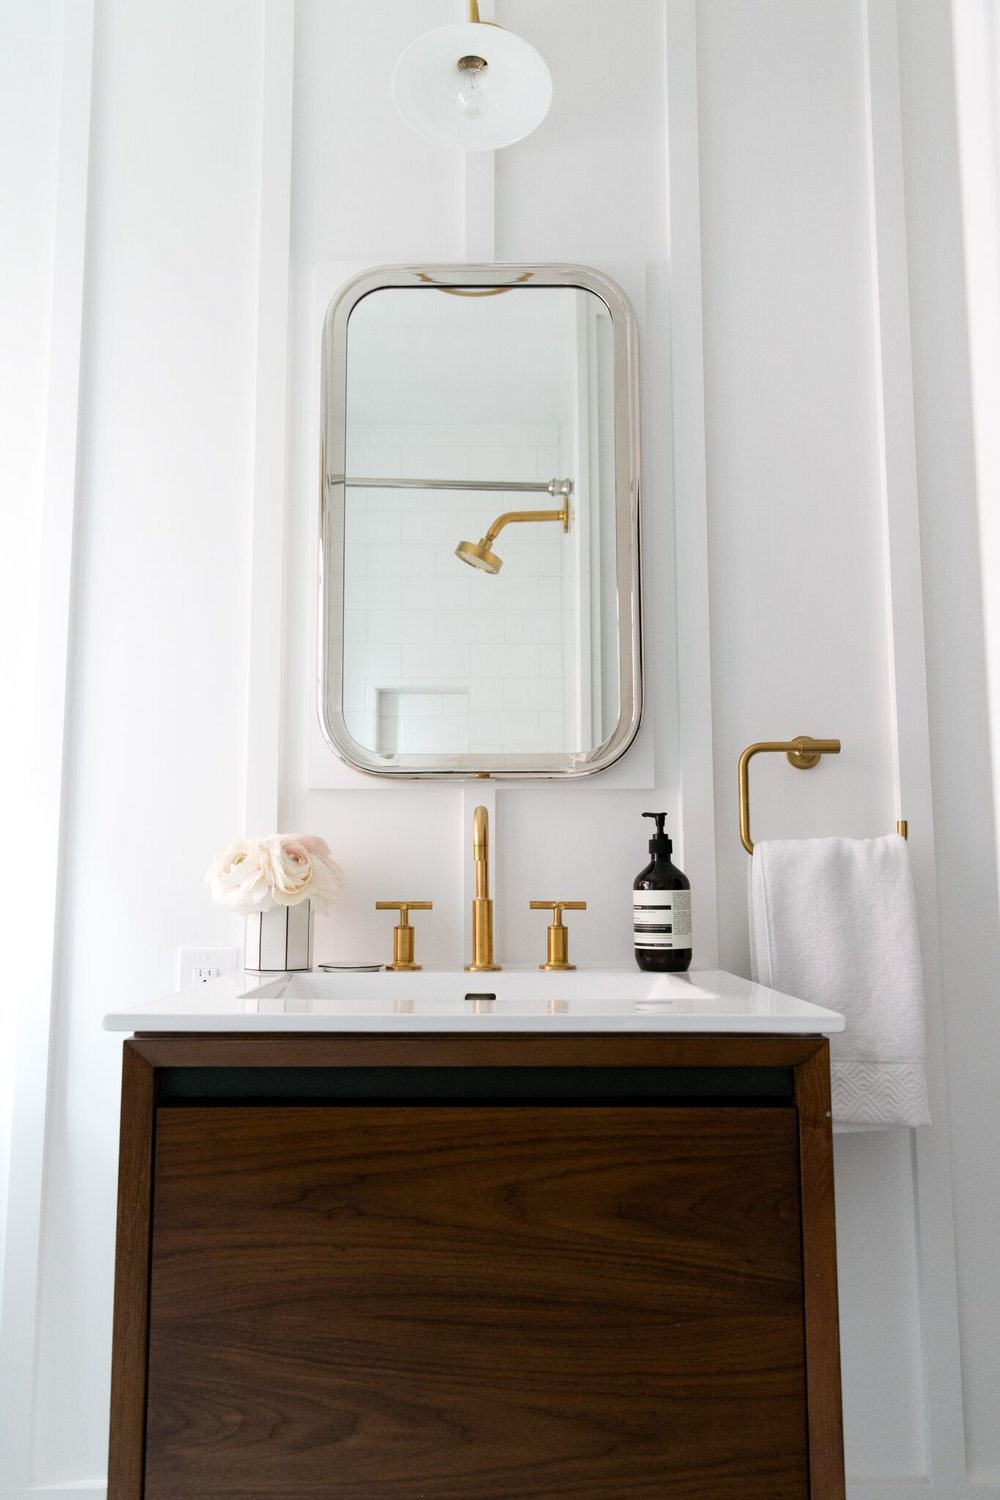 Wooden vanity with small mirror